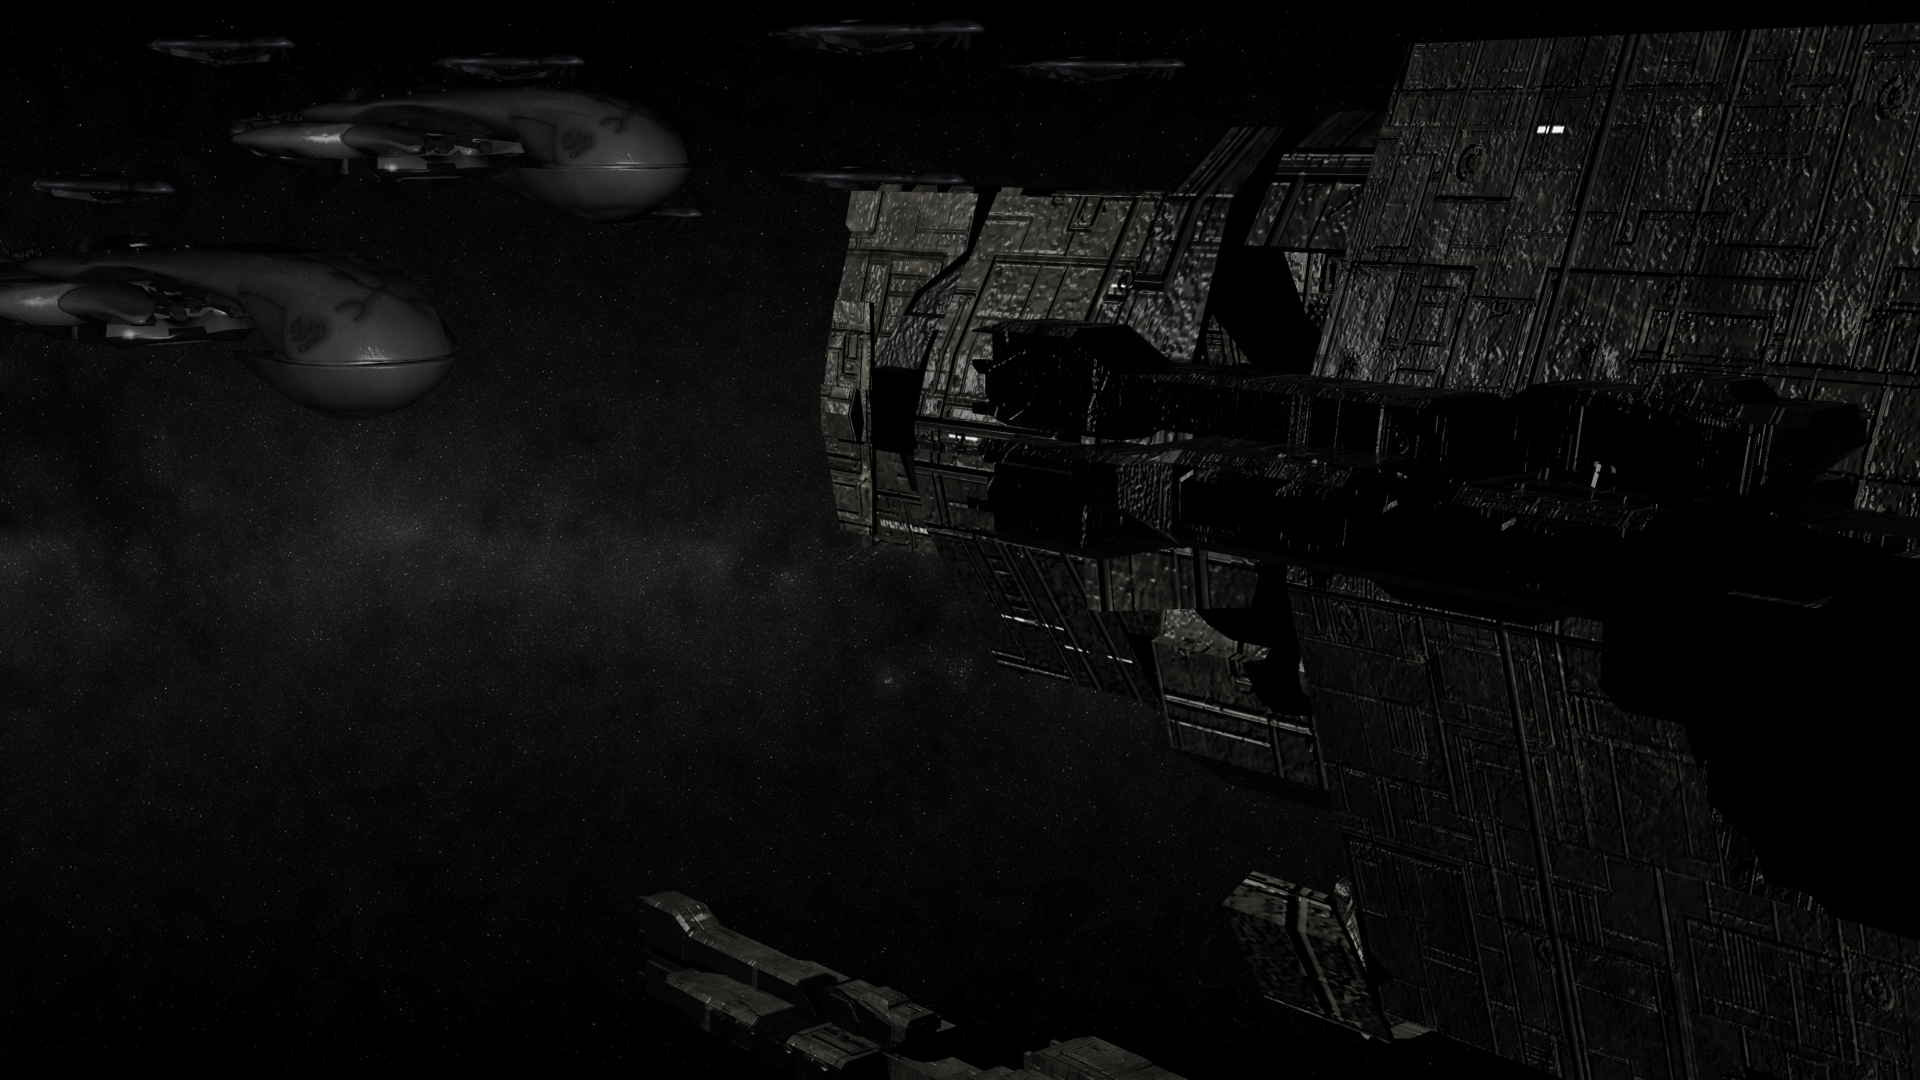 Promotional Widescreen Wallpaper Image Covenant At War Mod For Star Wars Empire At War Forces Of Corruption Mod Db